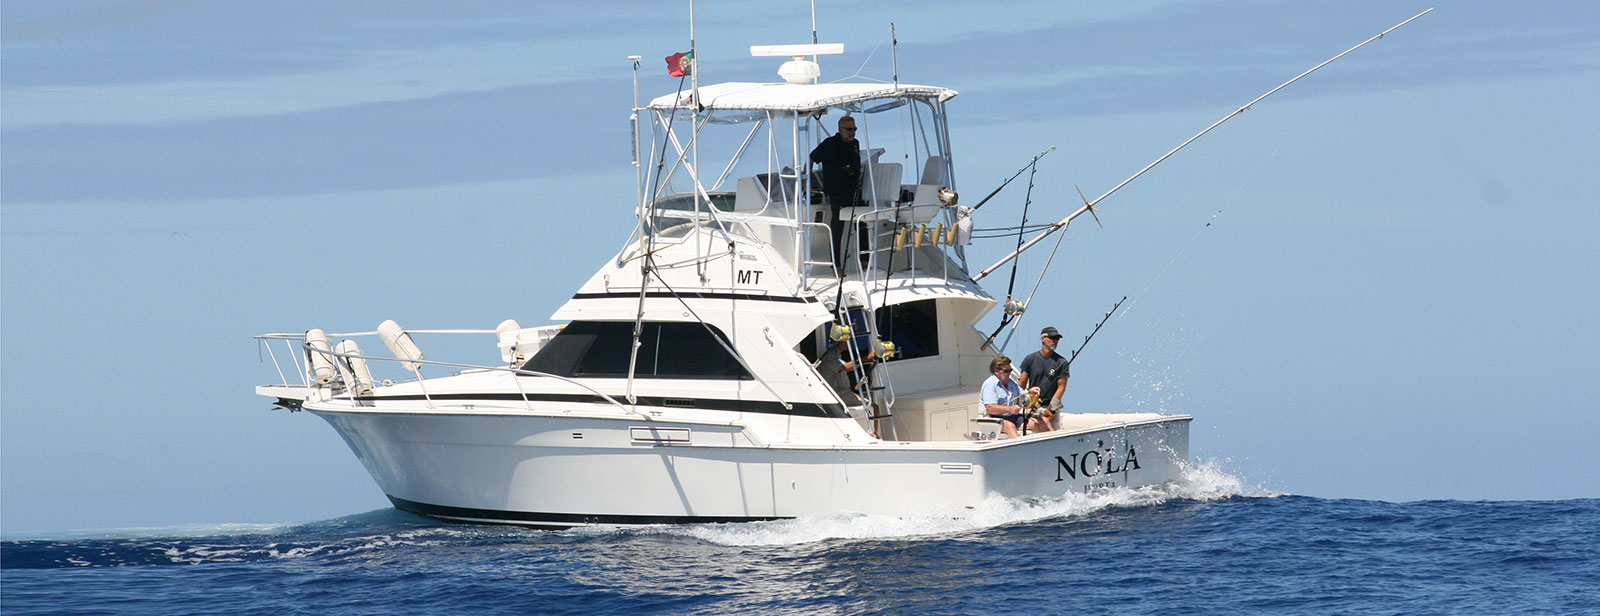 azores_blue_marlin_nola_backing_wide